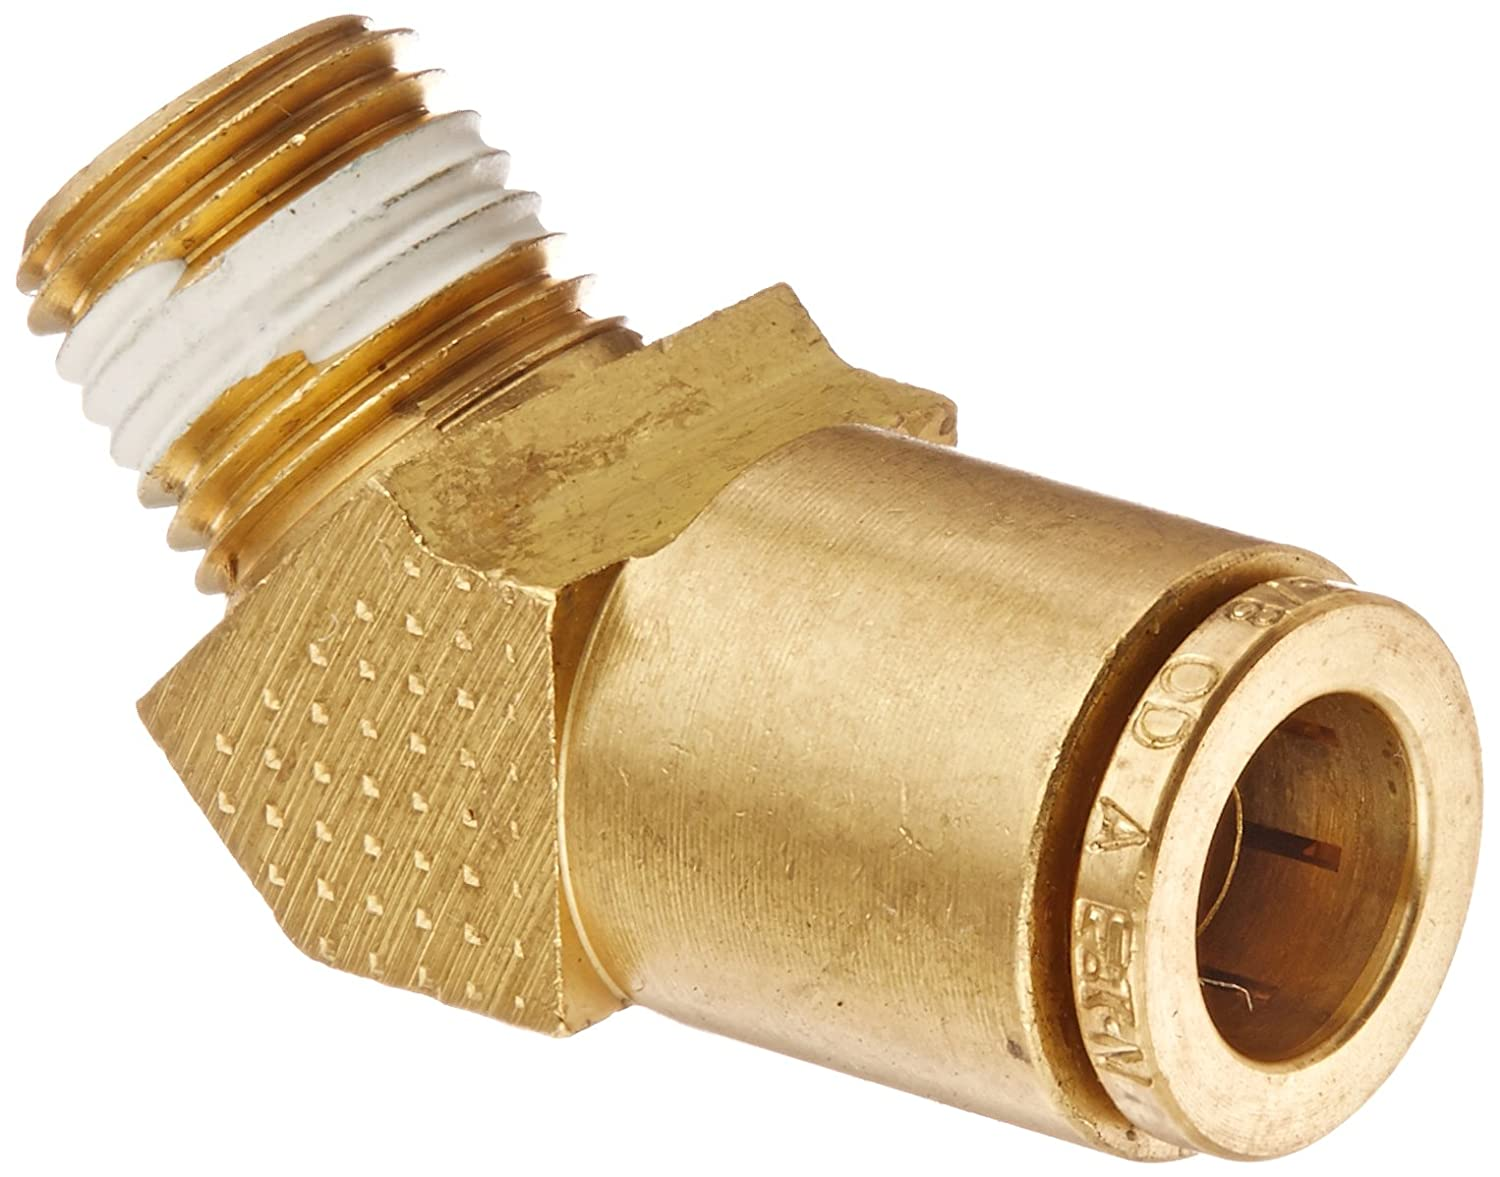 45 Degree Elbow Eaton Weatherhead 1880X12 Brass CA360 D.O.T 1//2 NPT Male x 3//4 Tube OD Air Brake Tube Fitting